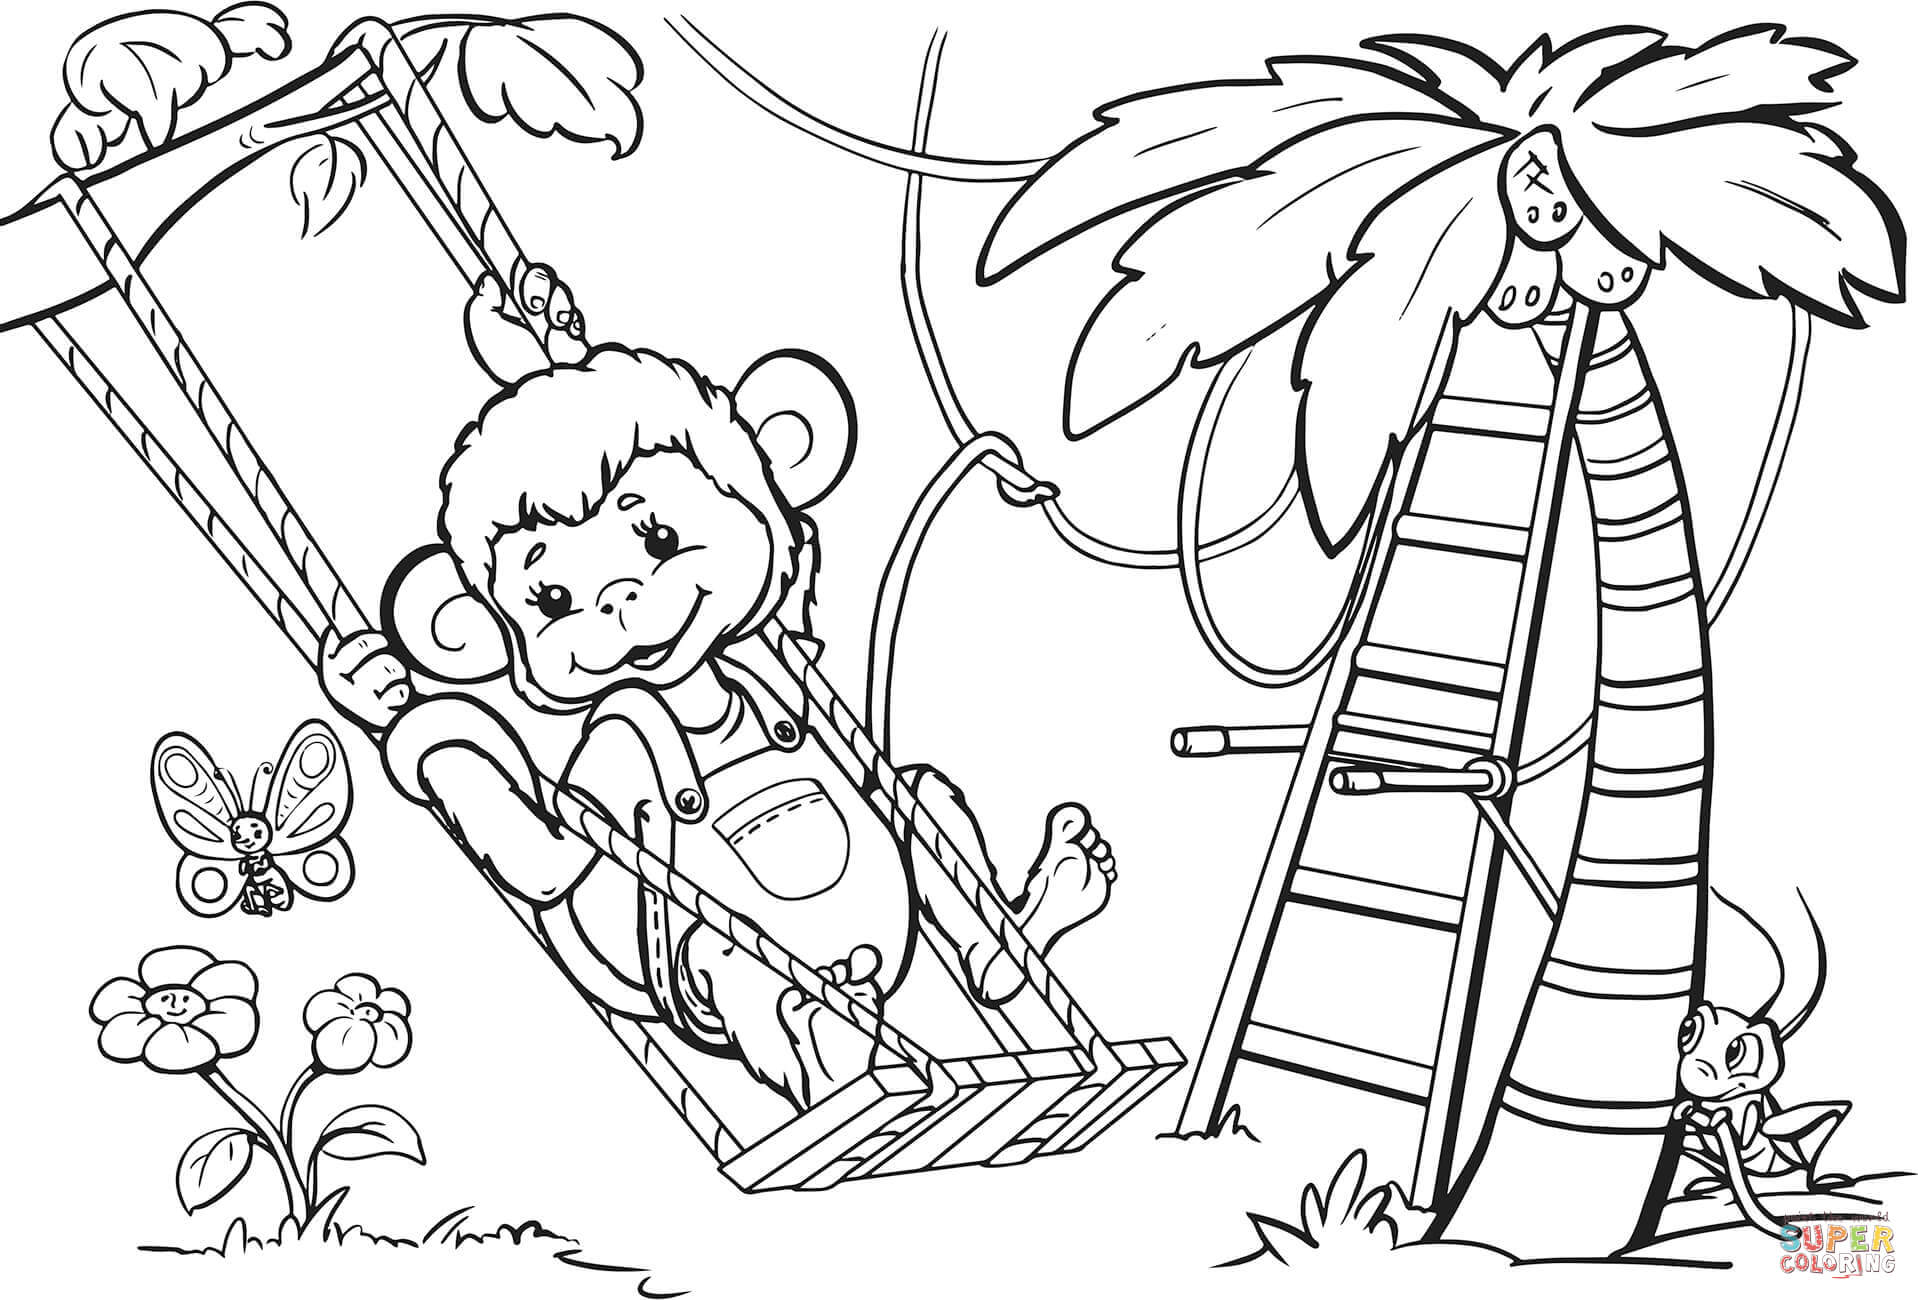 Monkey Is Swinging From The Tree Coloring Page